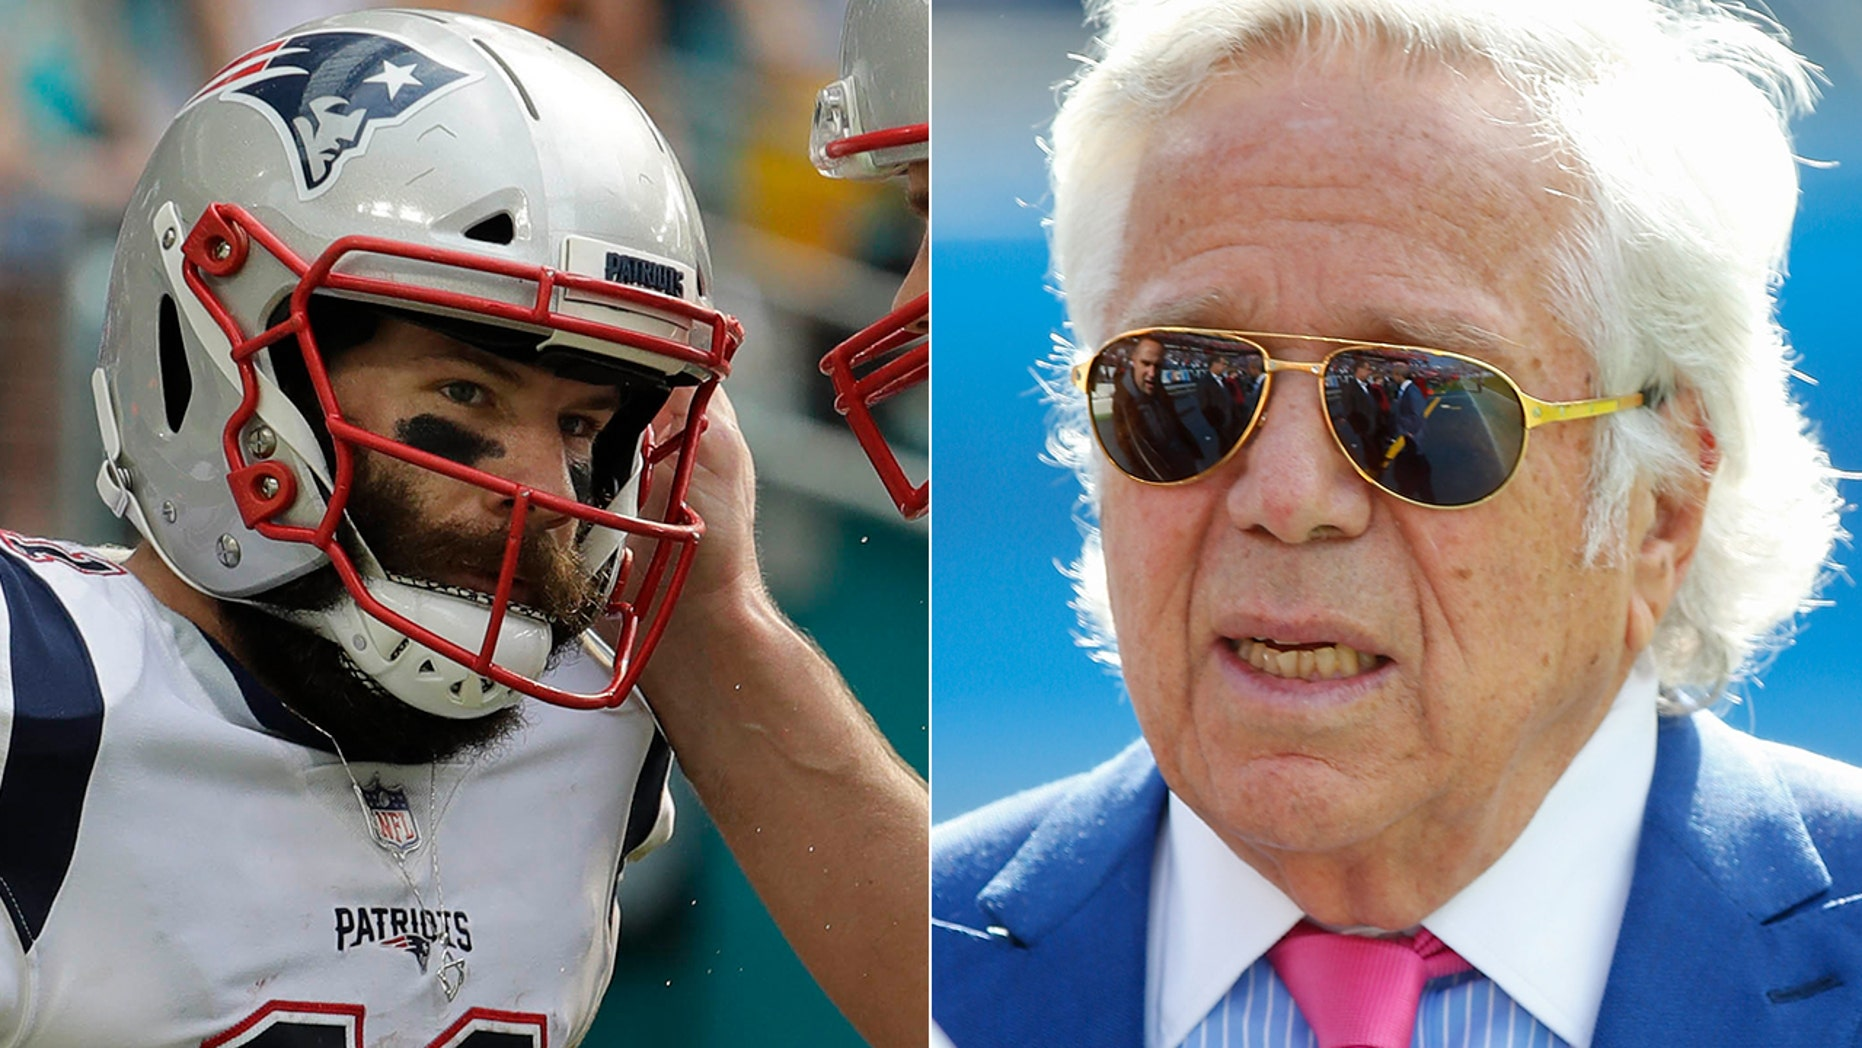 New England Patriots' Julian Edelman and Robert Kraft paid tribute to the Tree of Life shooting victims ahead of Sunday's game.